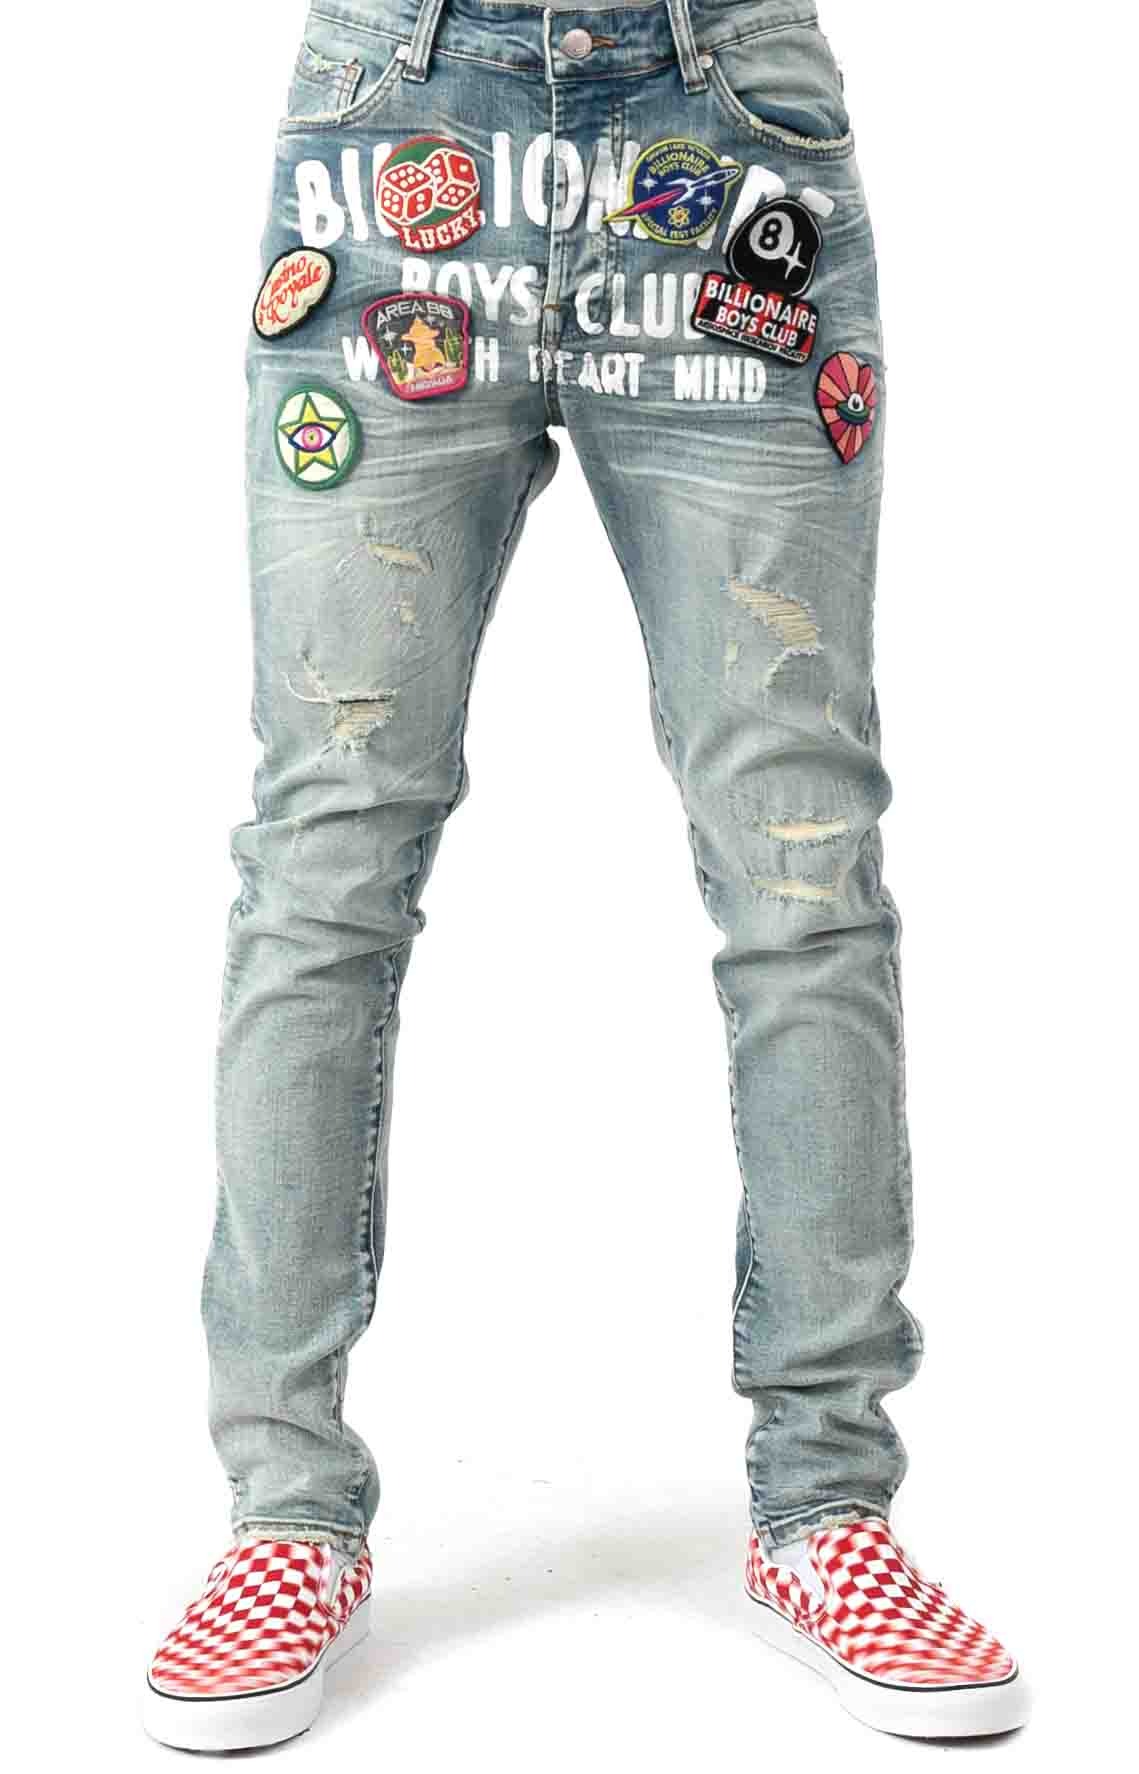 BB Lucky Jeans - Axis  2